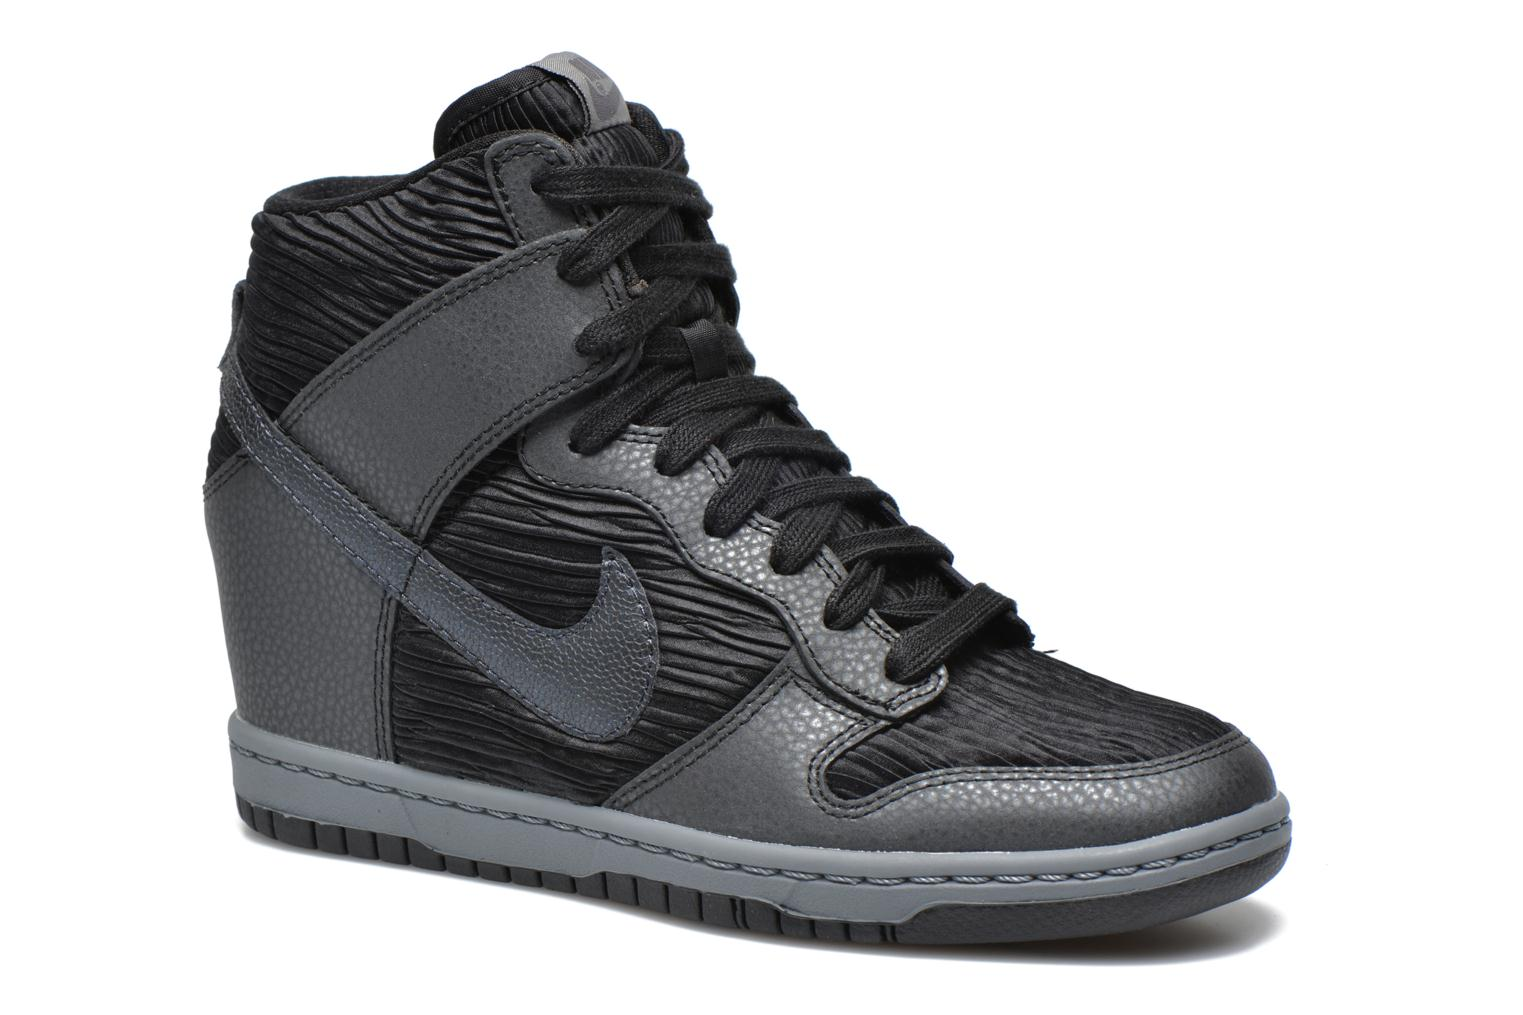 cheap for discount e80ea f479b ... Sneakers Nike Dunk sky high Zwart detail ...